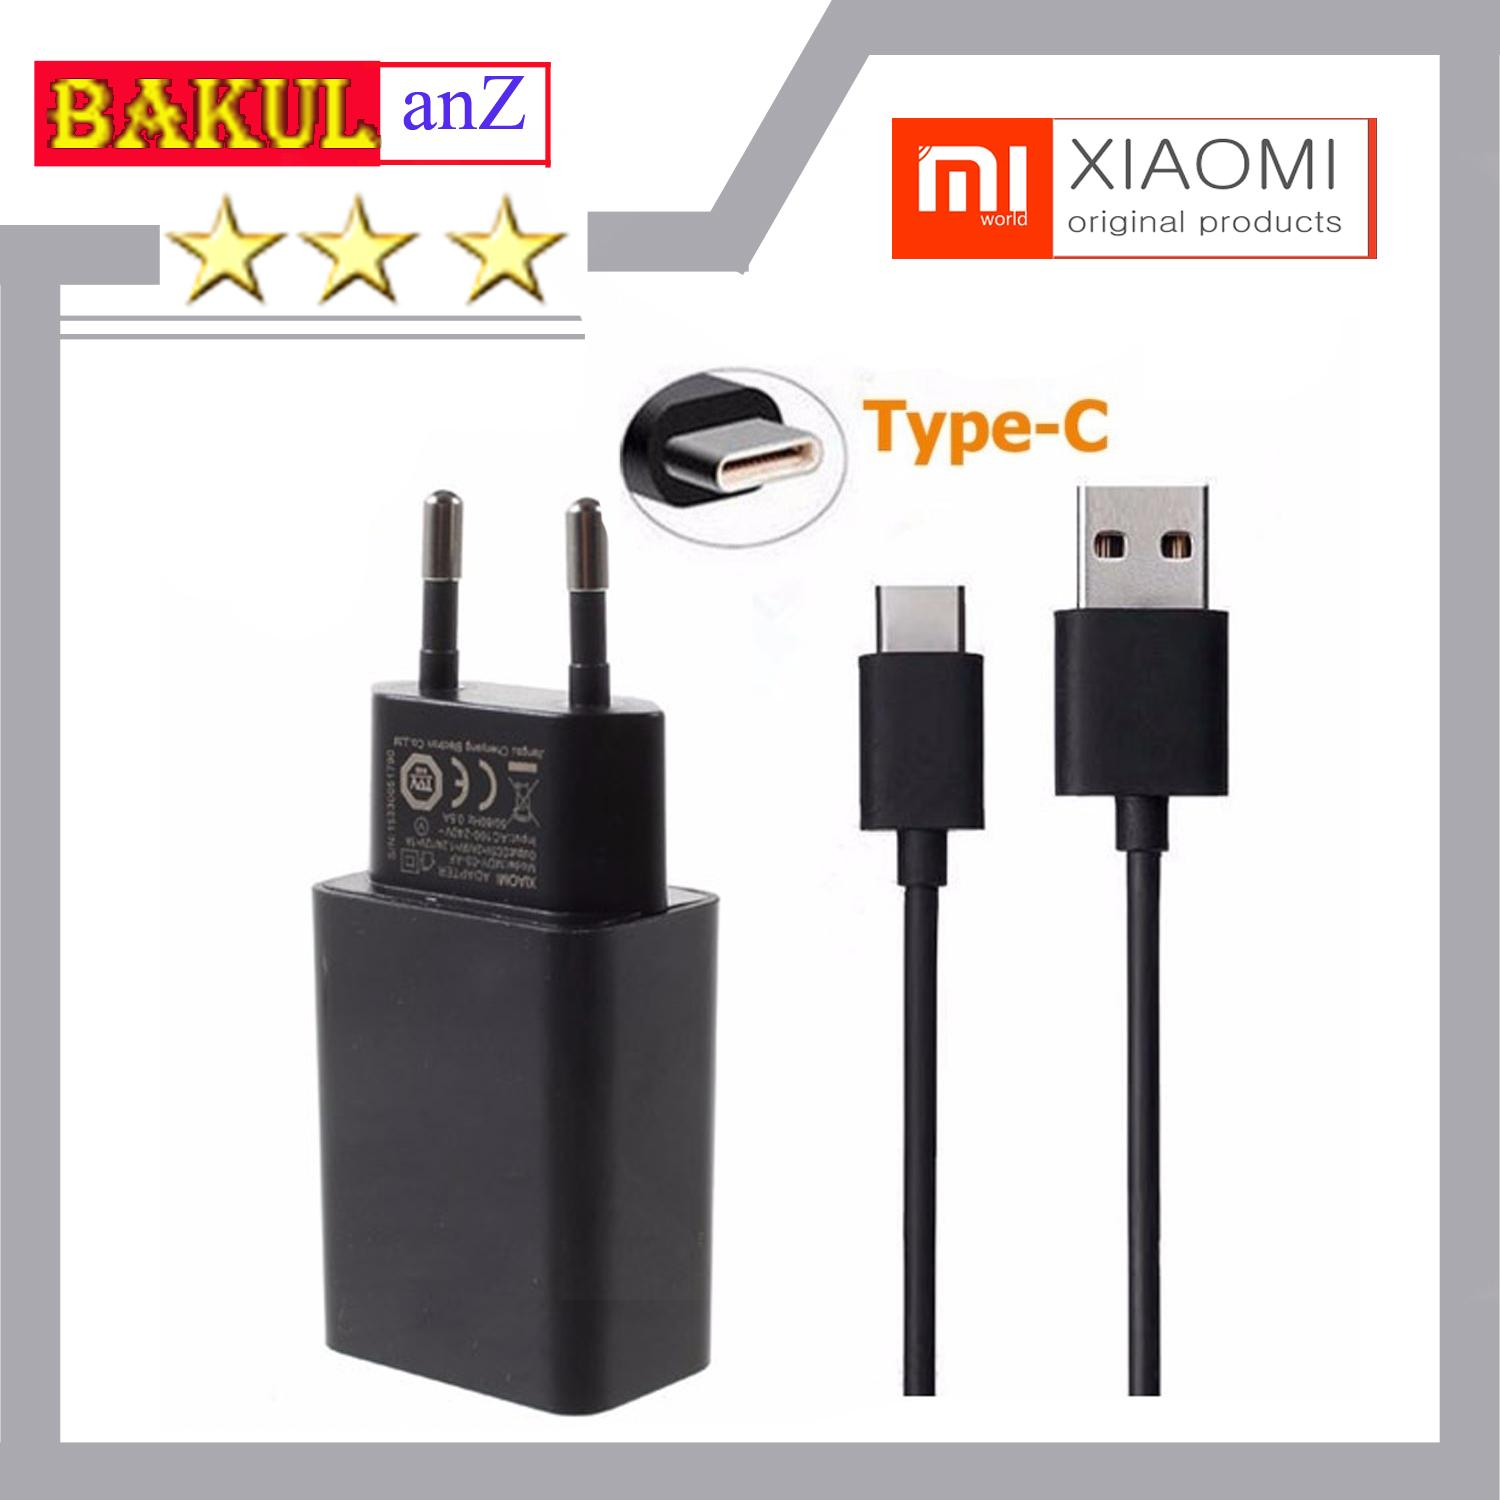 Buy Sell Cheapest Casan Carger Xiaomi Best Quality Product Deals Charger Original Mi4i Mi 4 4i Redmi 4a 4x Prime Note Travel Tipe C Quick Charge Untku Oem Cas